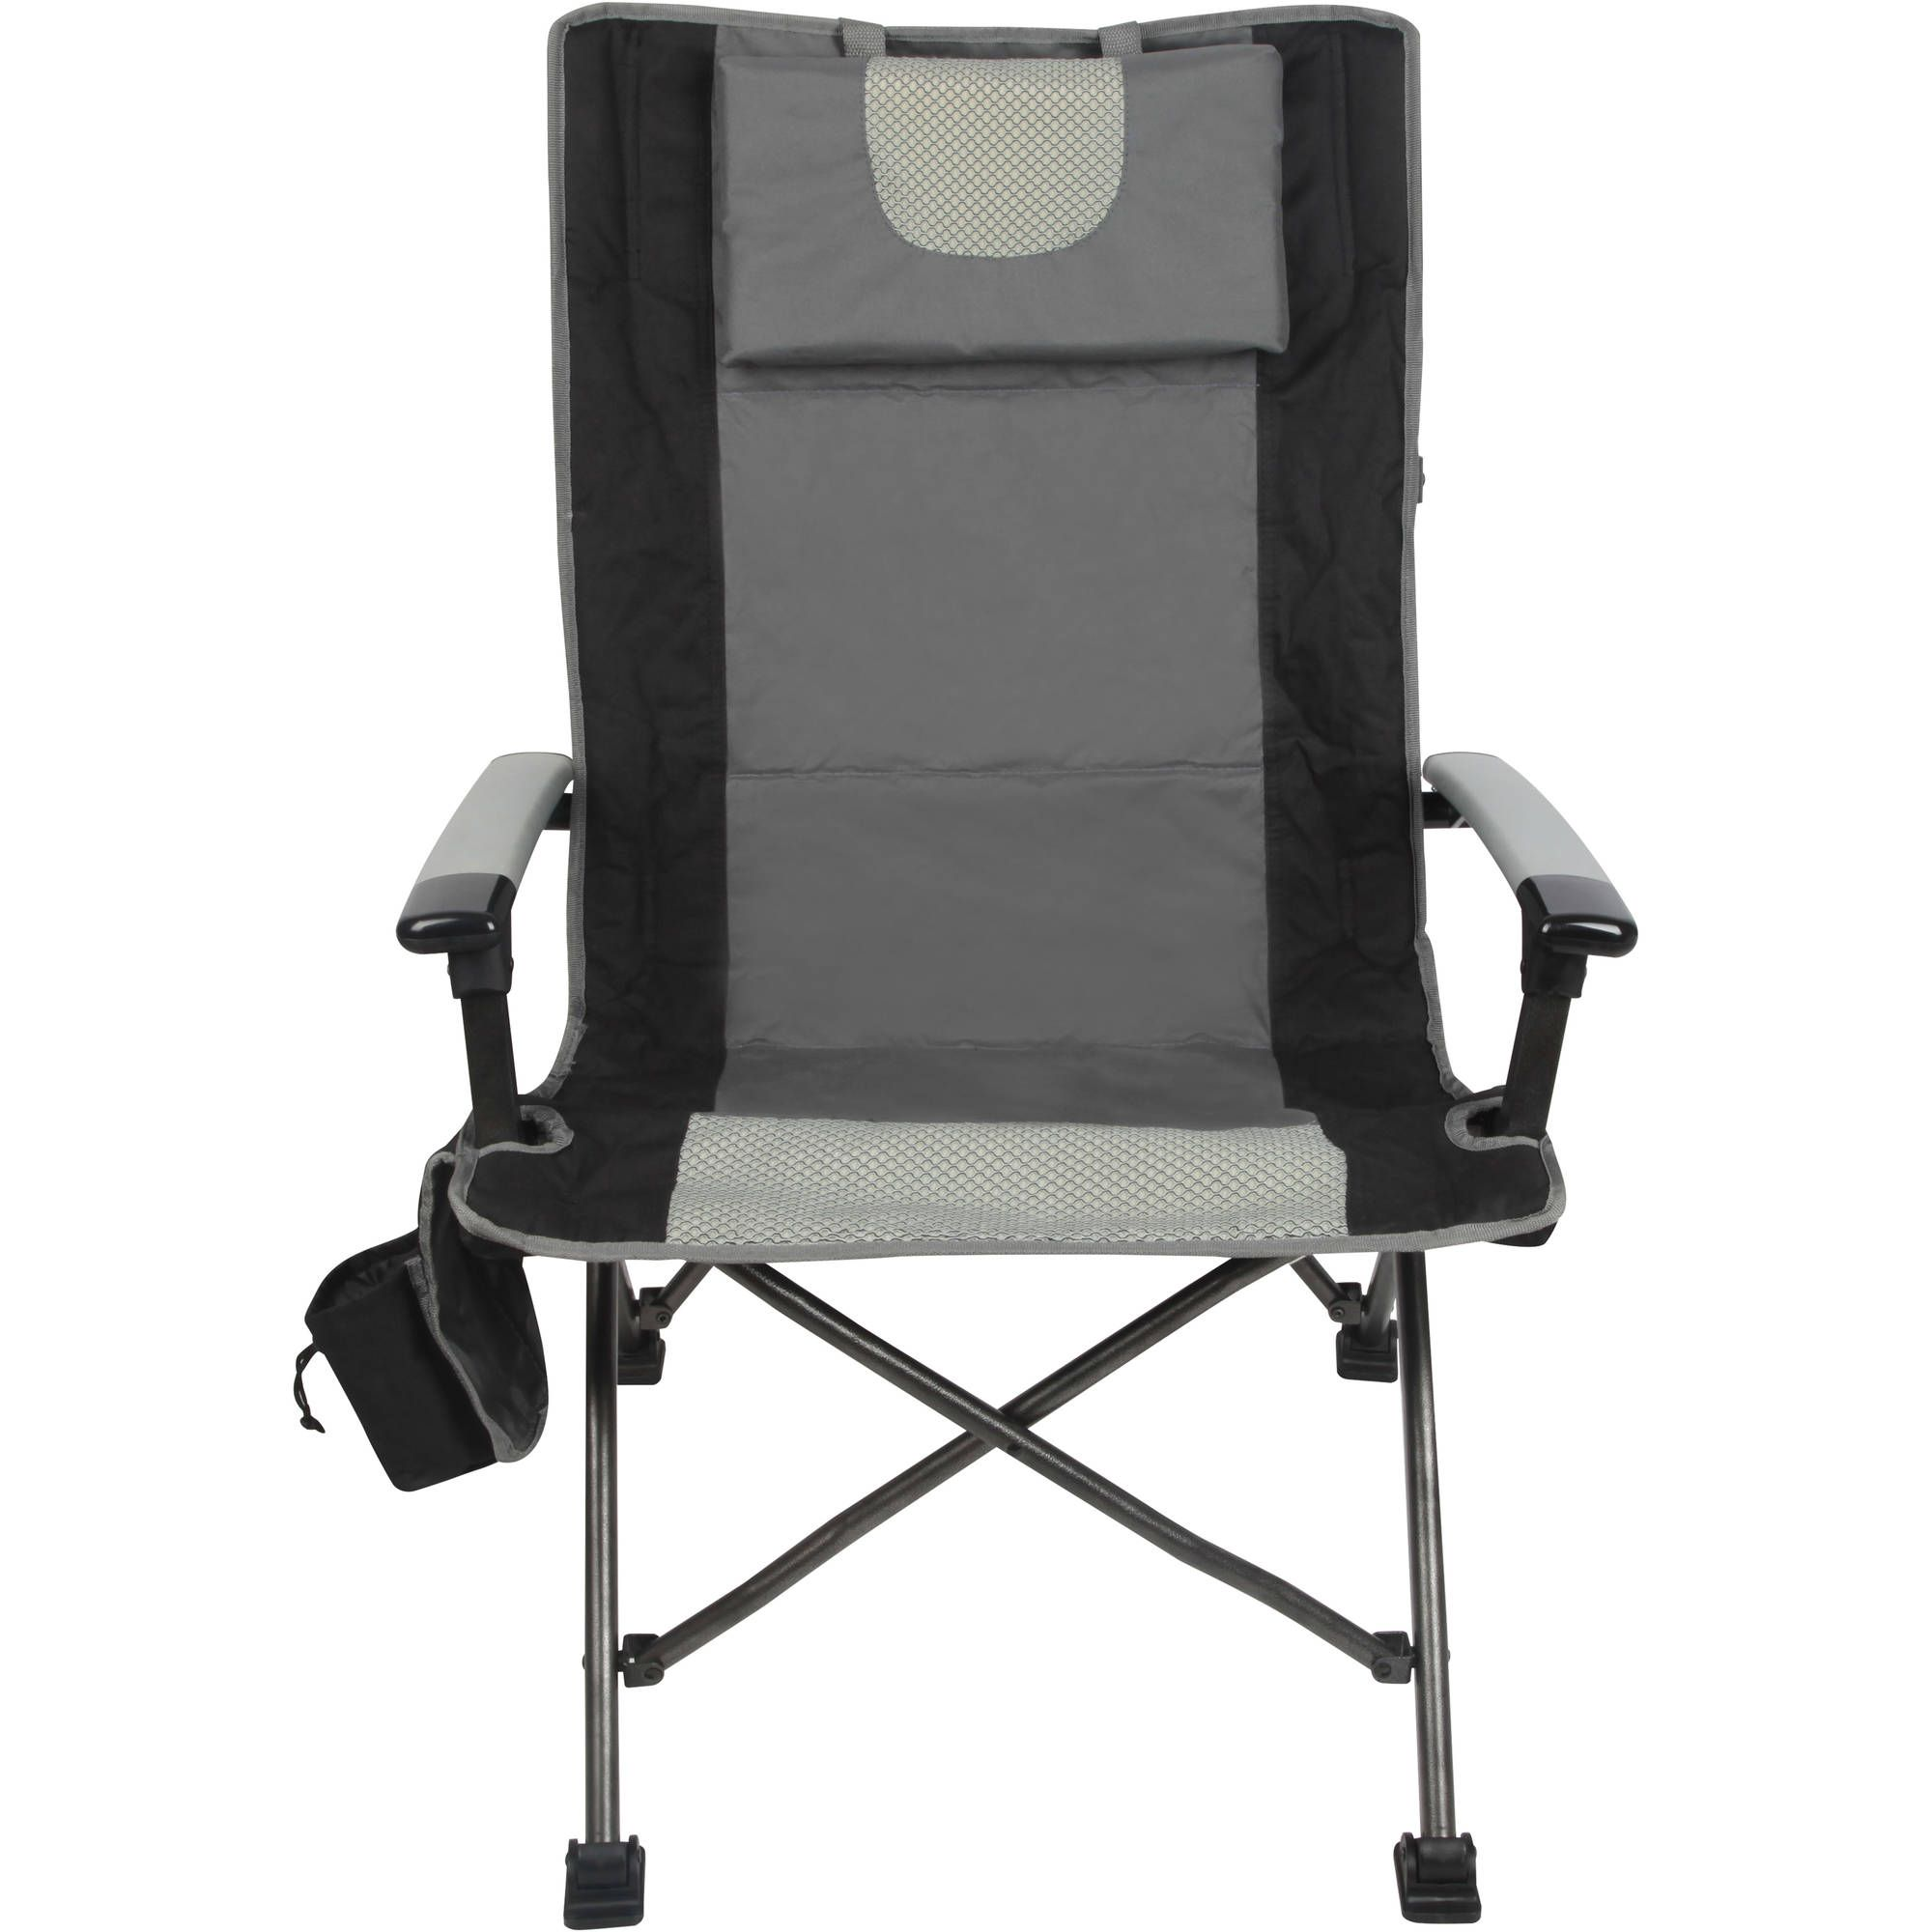 Outdoor High Back Folding Chair With Headrest Set Of 2 Comfortable